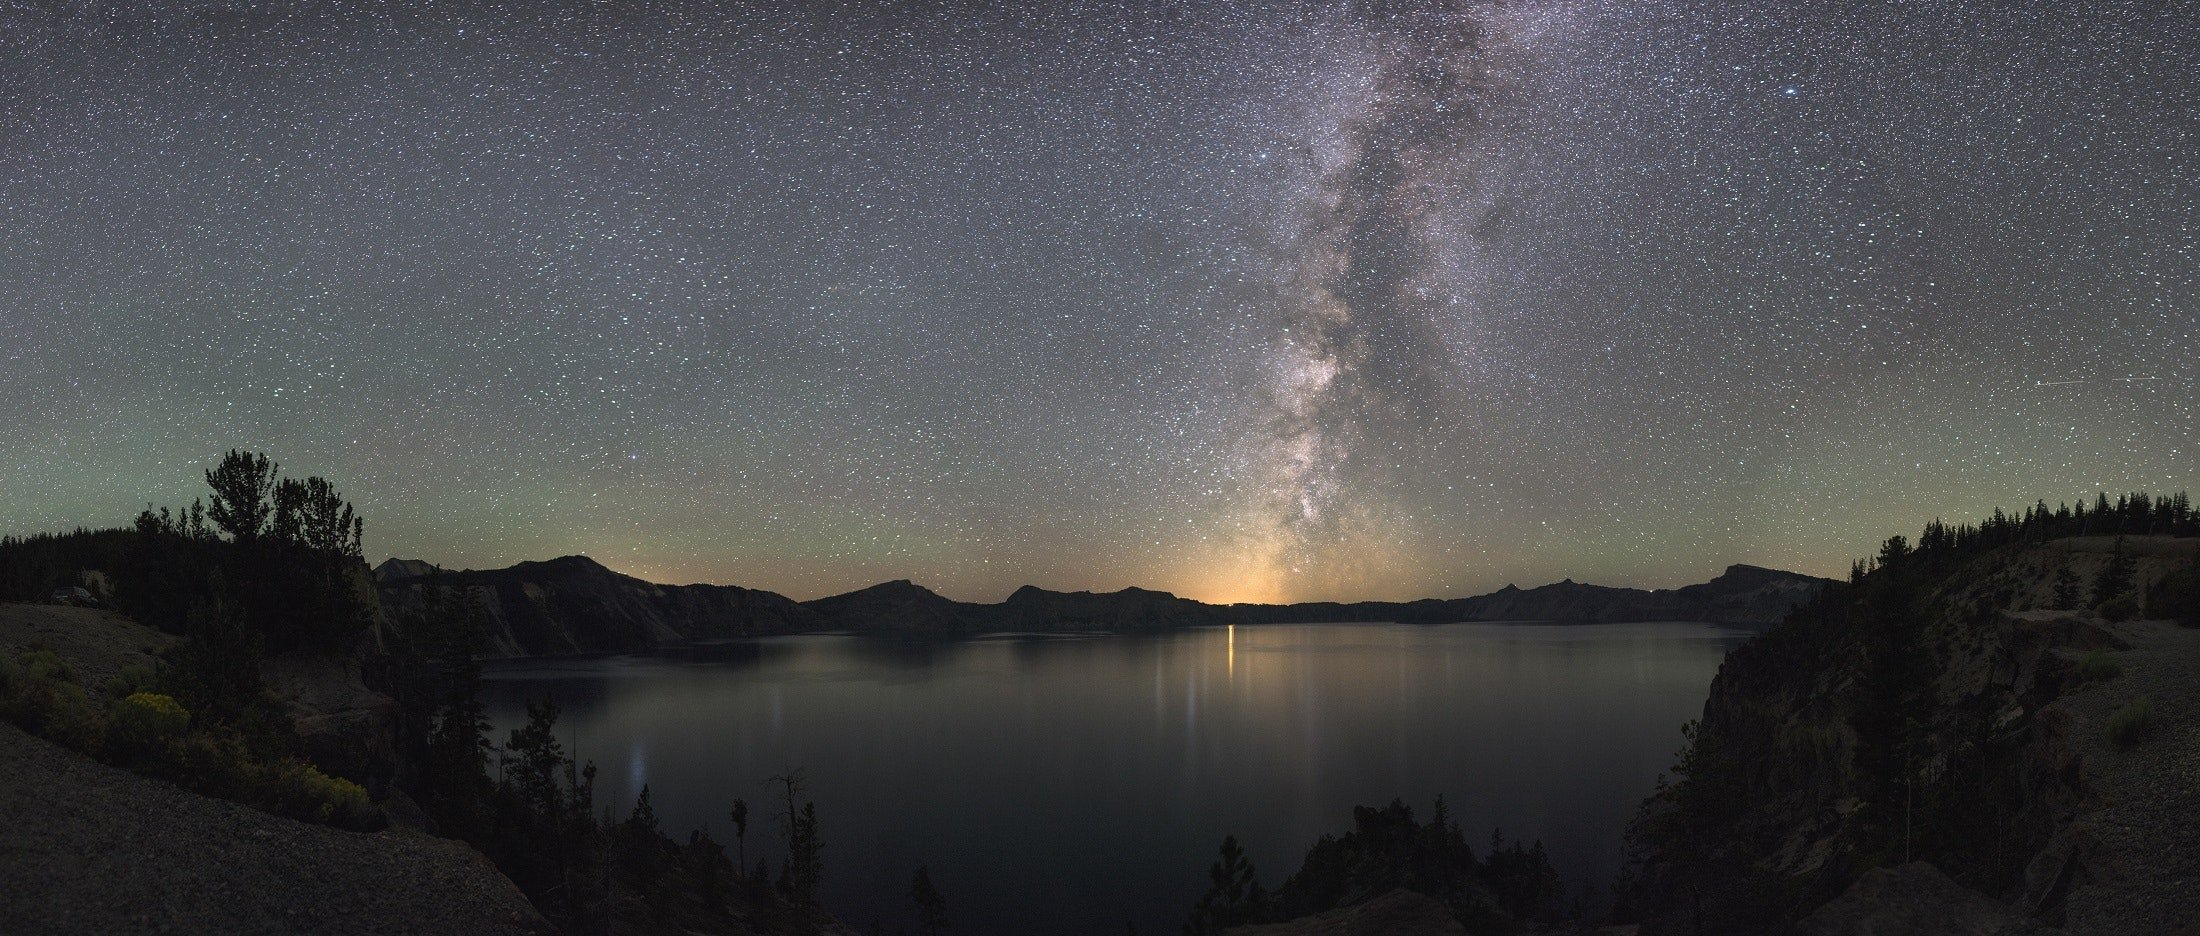 Crater Lake National Park - one of the sites to explore after moving to Oregon.